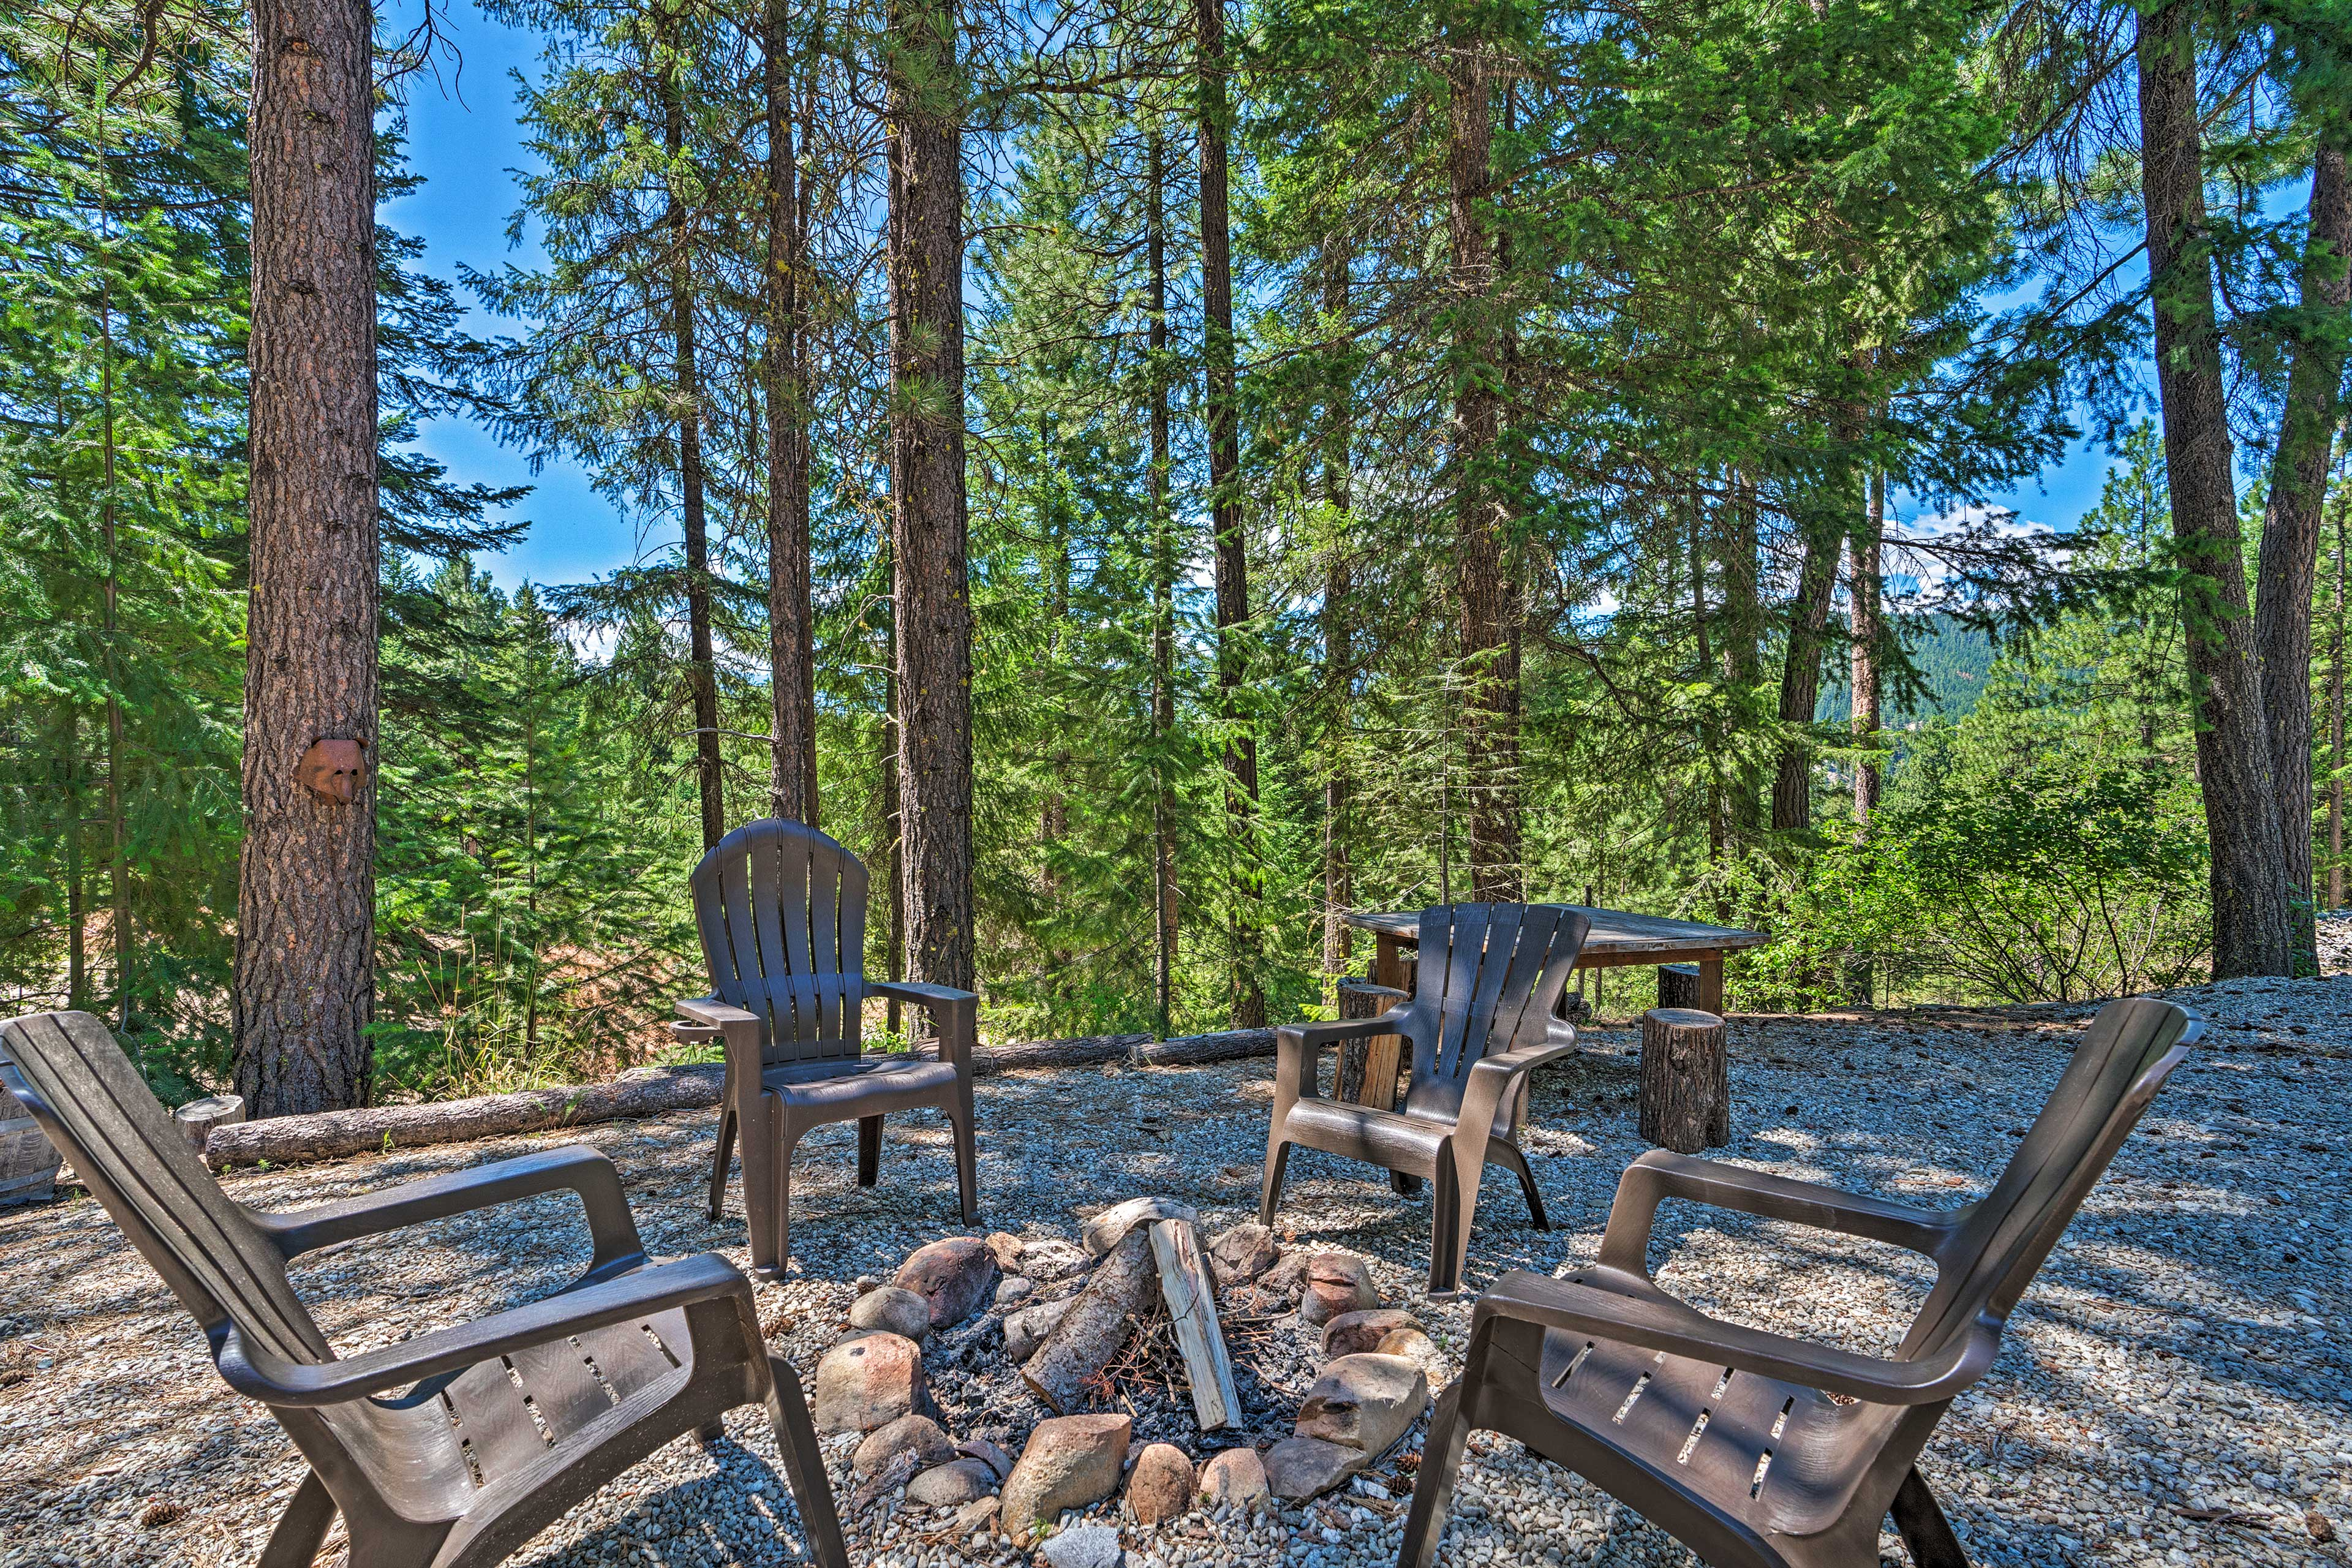 The property features an abundance of outdoor amenities, including a fire pit.